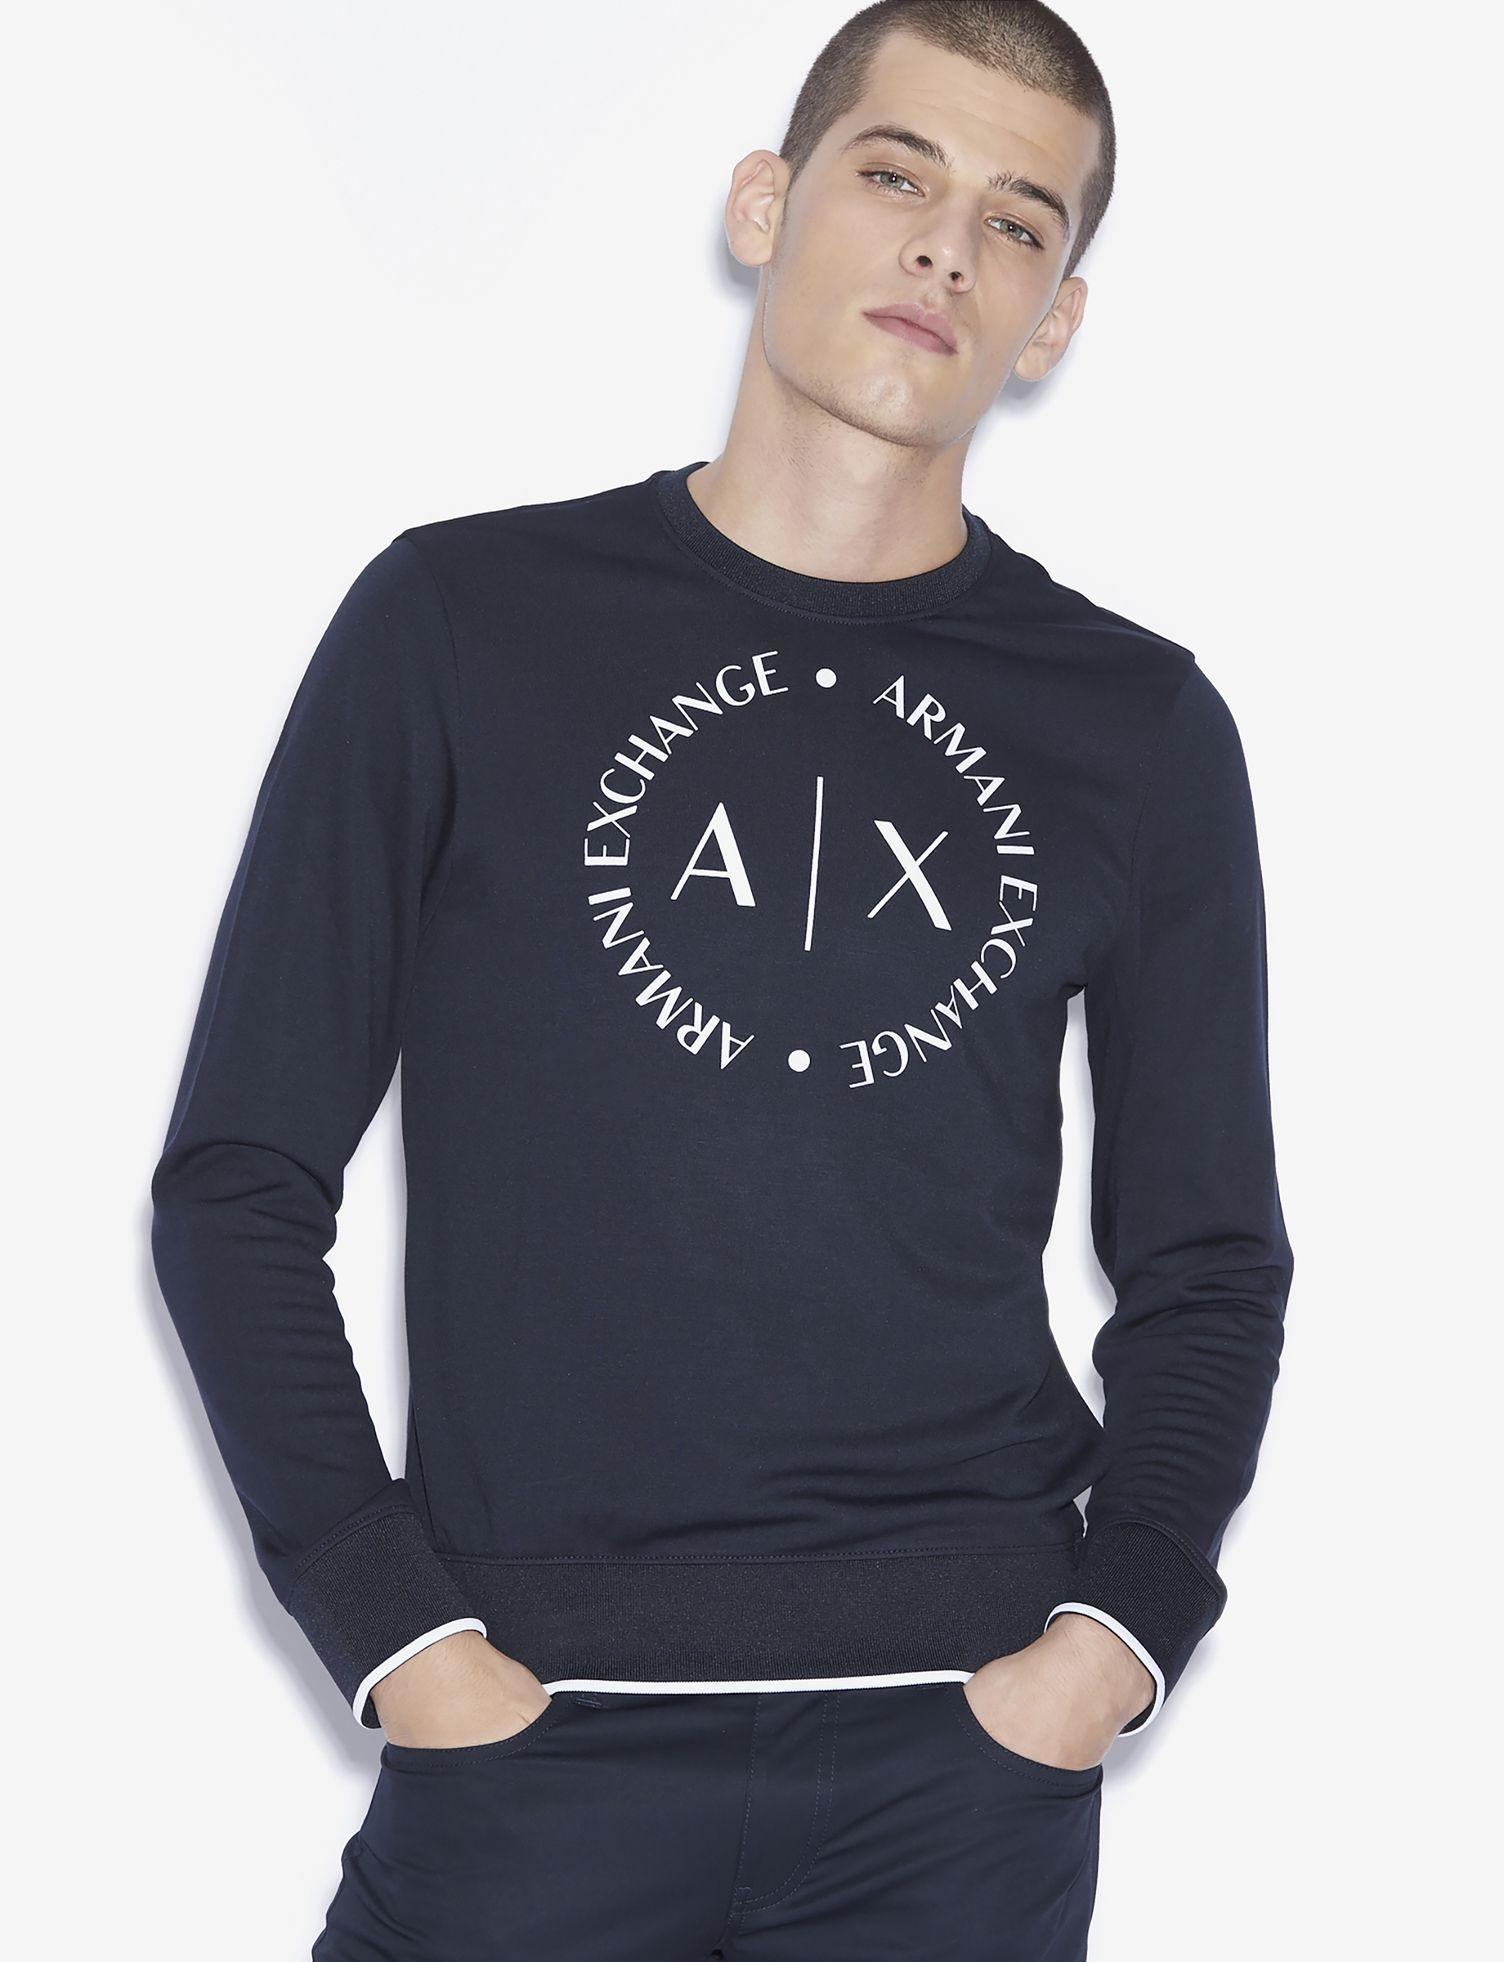 Armani Exchange - Sweater - Navy - Stijl Alkmaar